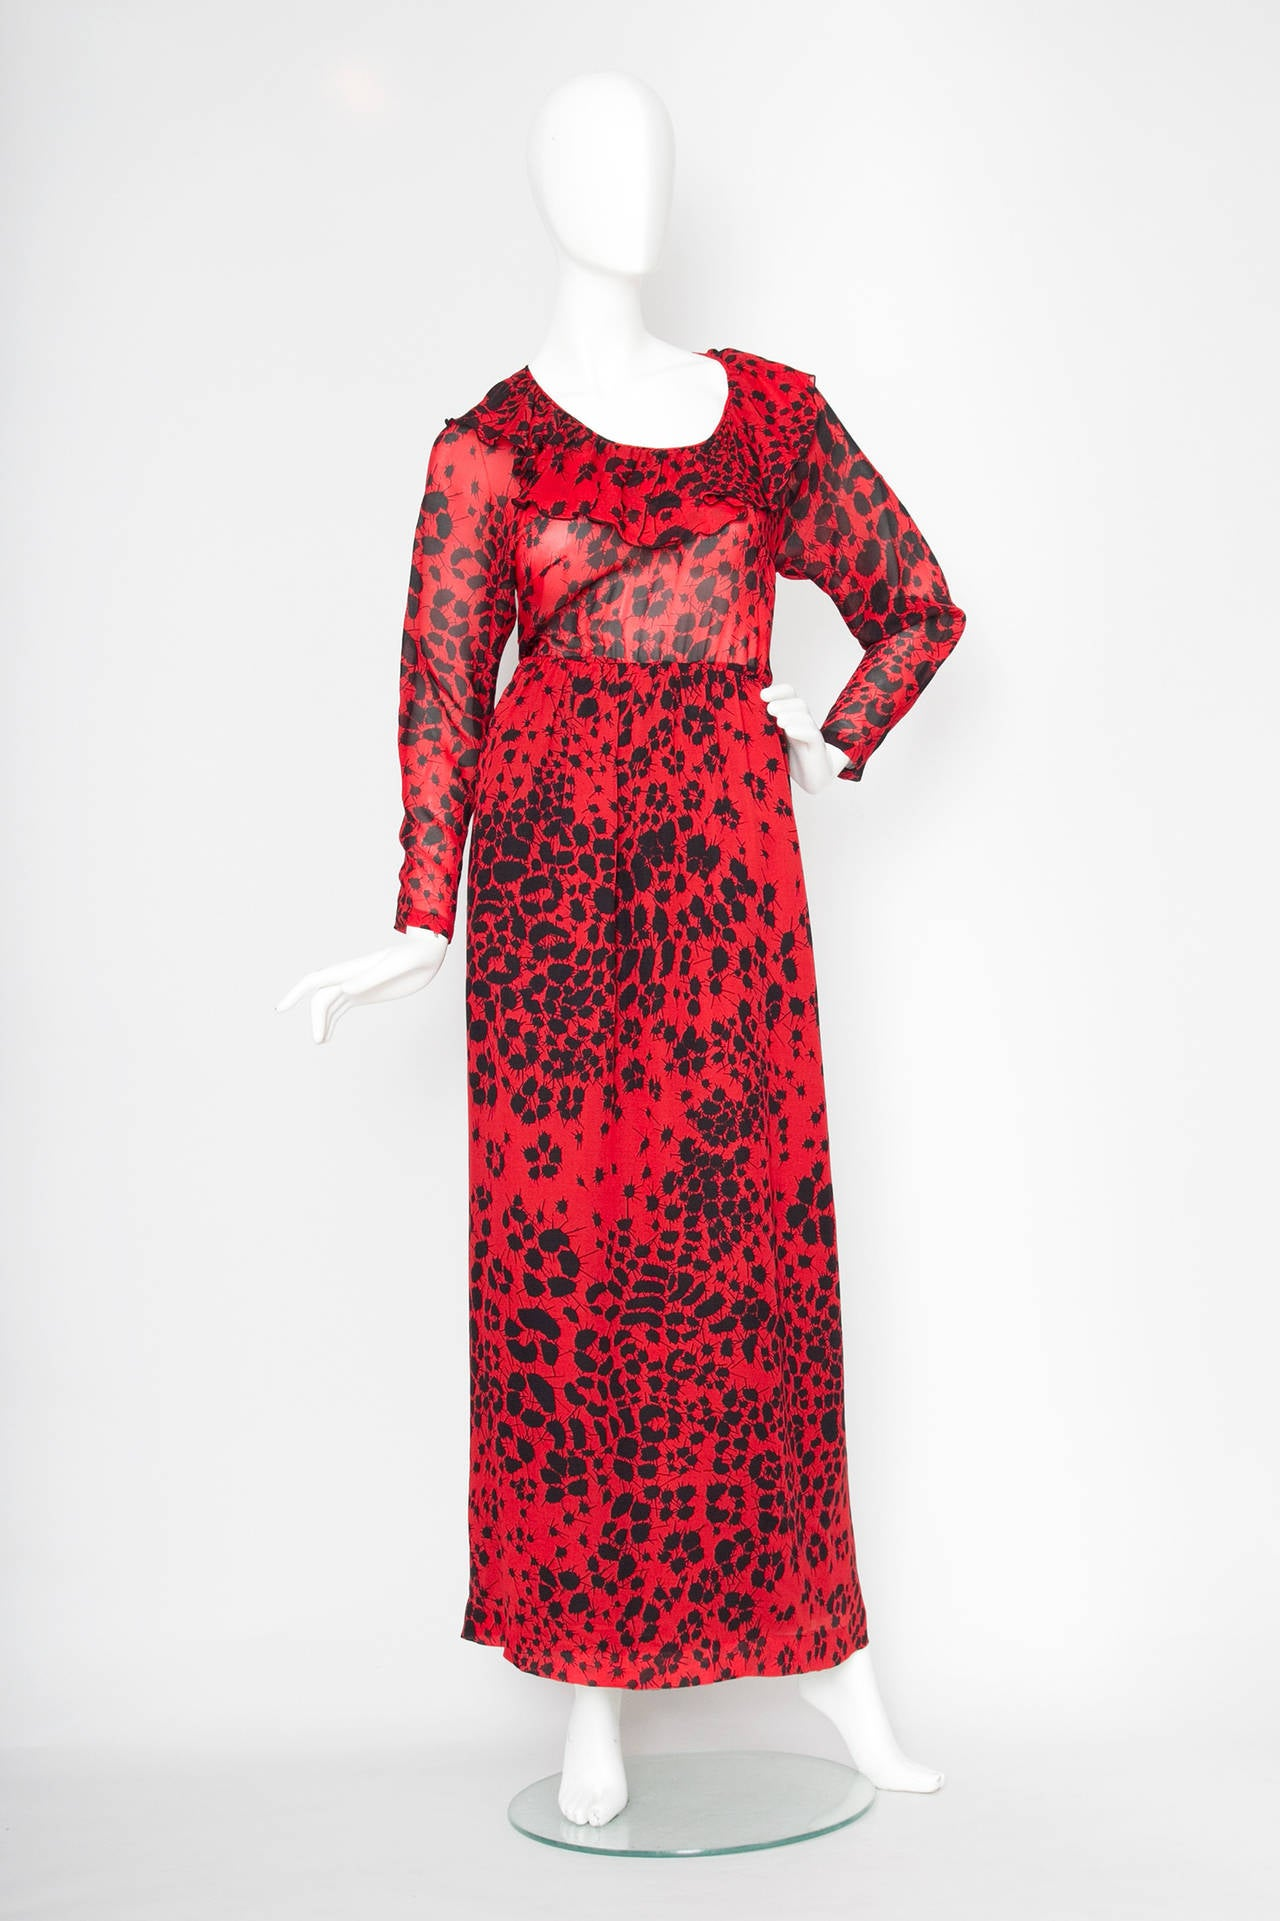 An absolutely gorgeous 1970s bright red Lanvin silk dress with an all over abstract black flower print and a nipped in waist. The dress has a sheer blousing top with tapered sleeves, a round neckline with delicate ruffle detail and a fully lined